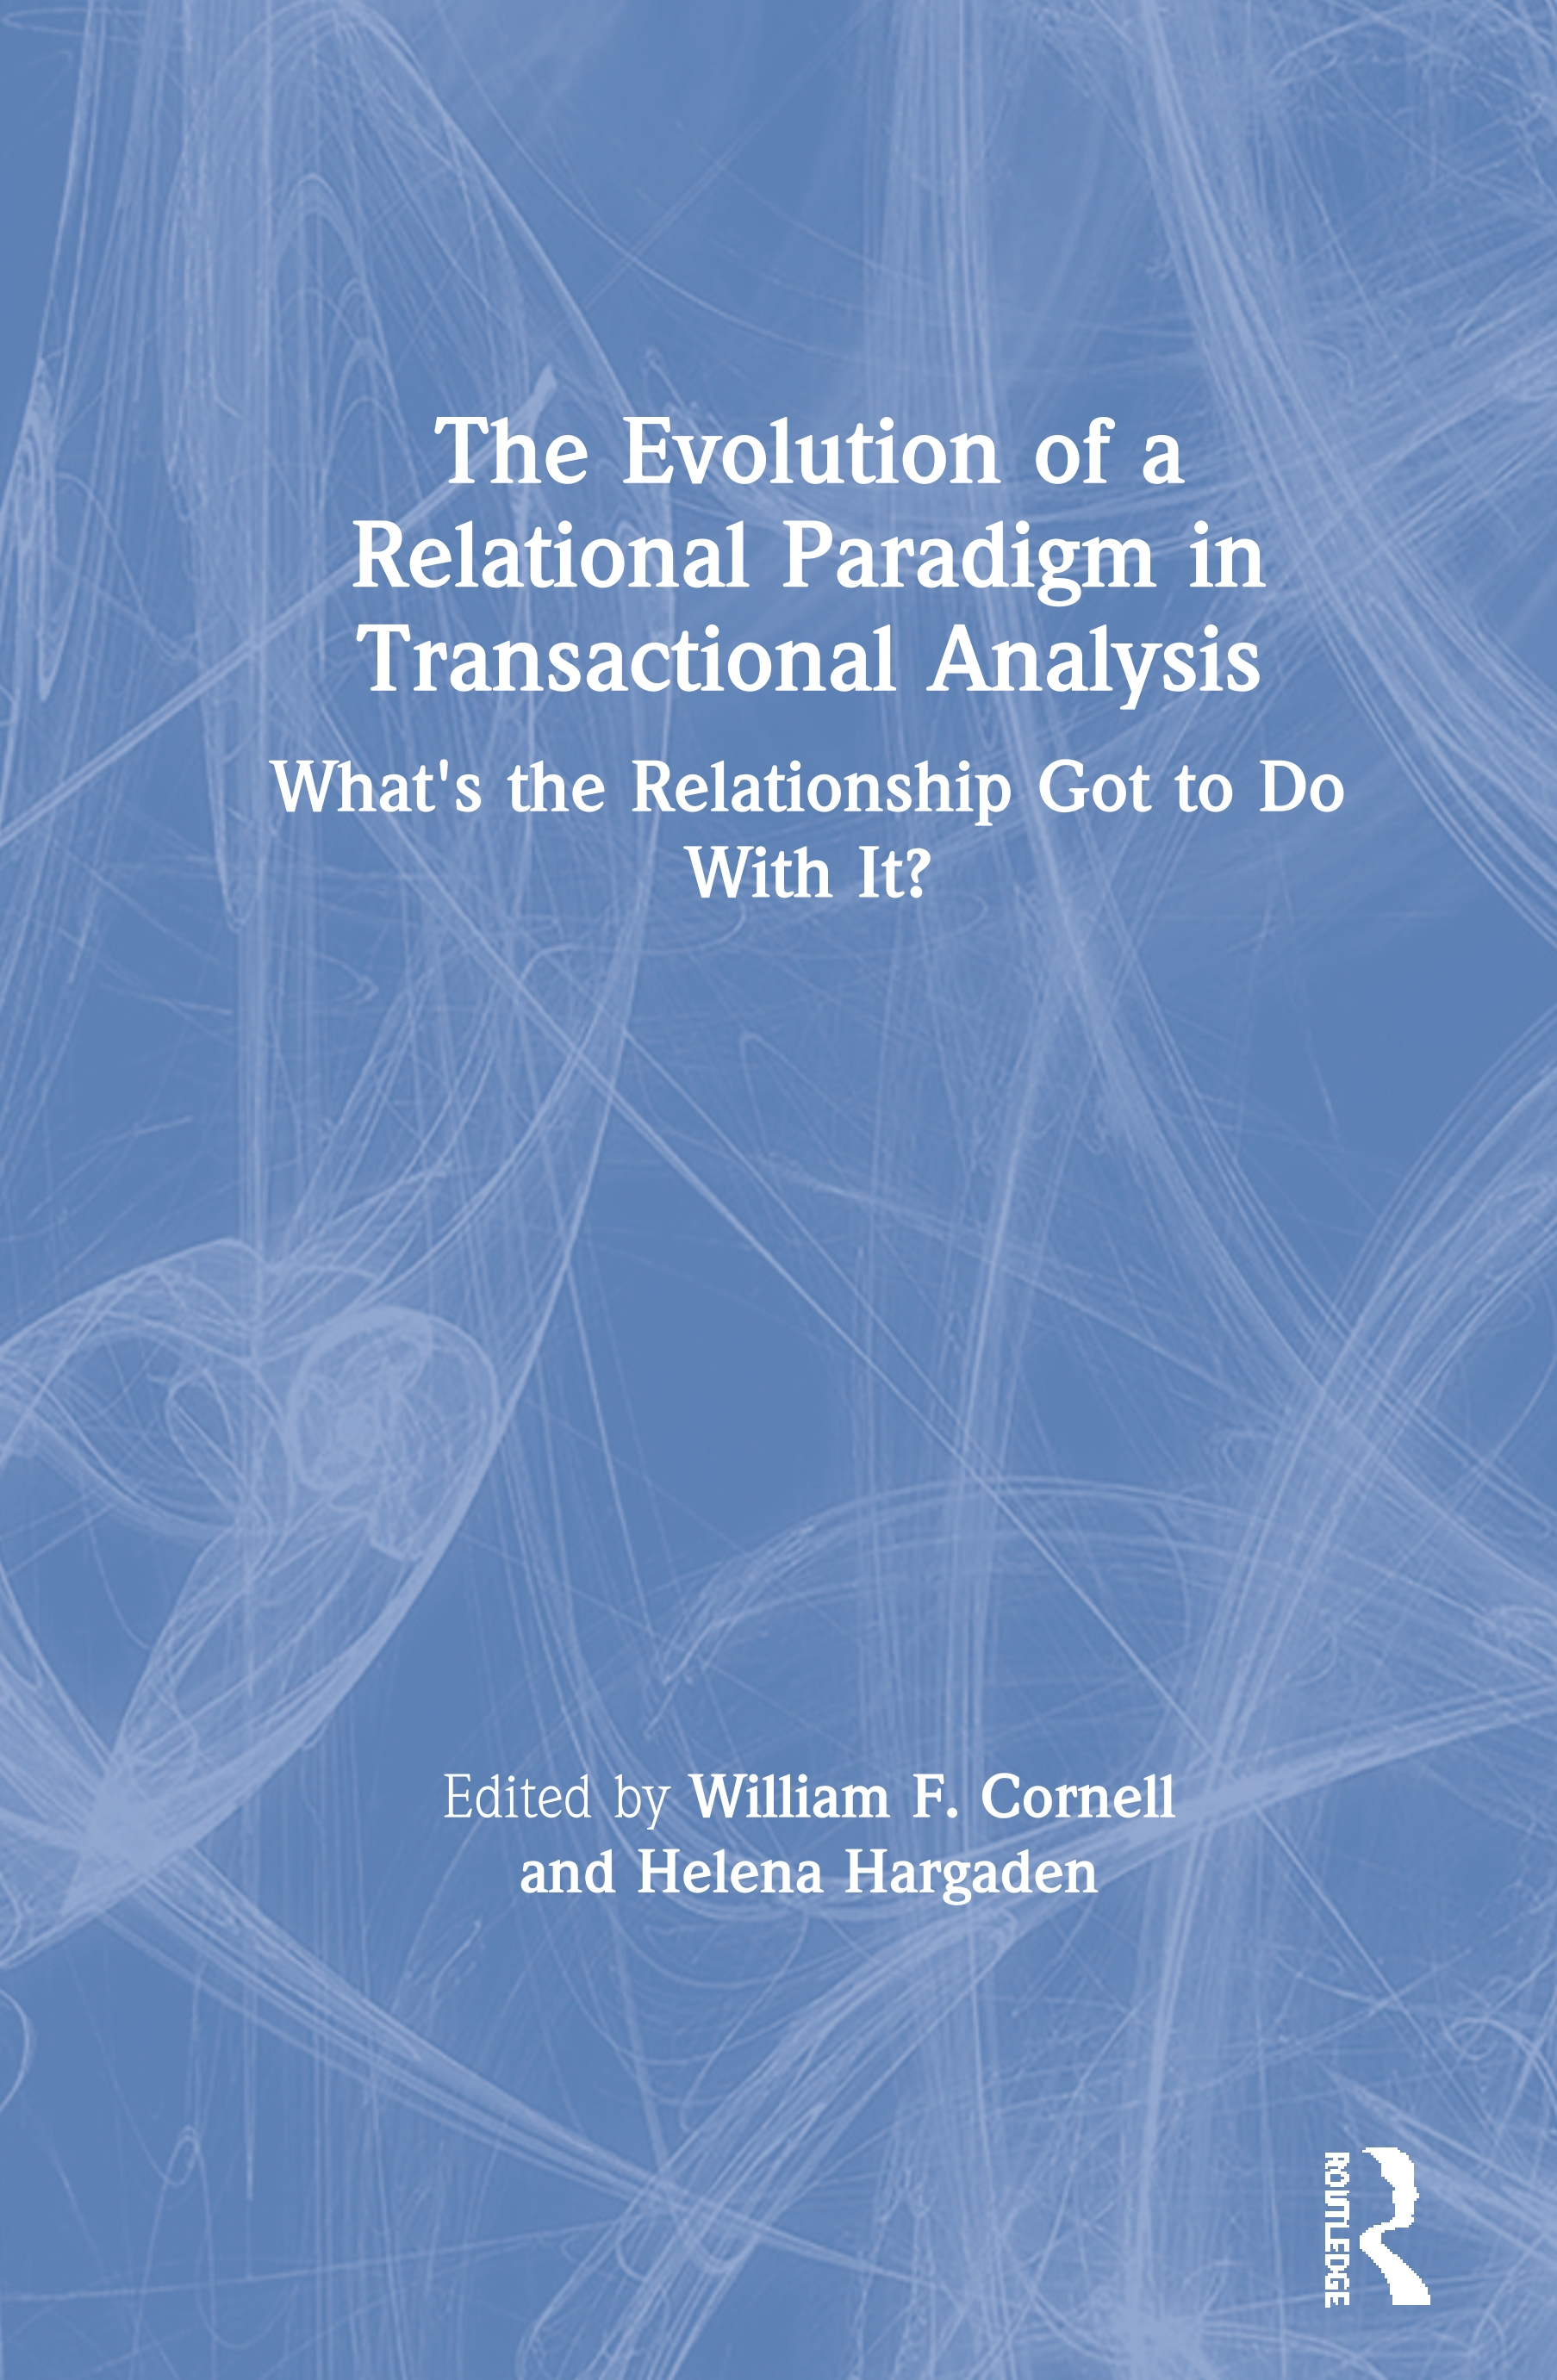 The Evolution of Relational Paradigms in Transactional Analysis: What's the Relationship Got to Do With It? book cover